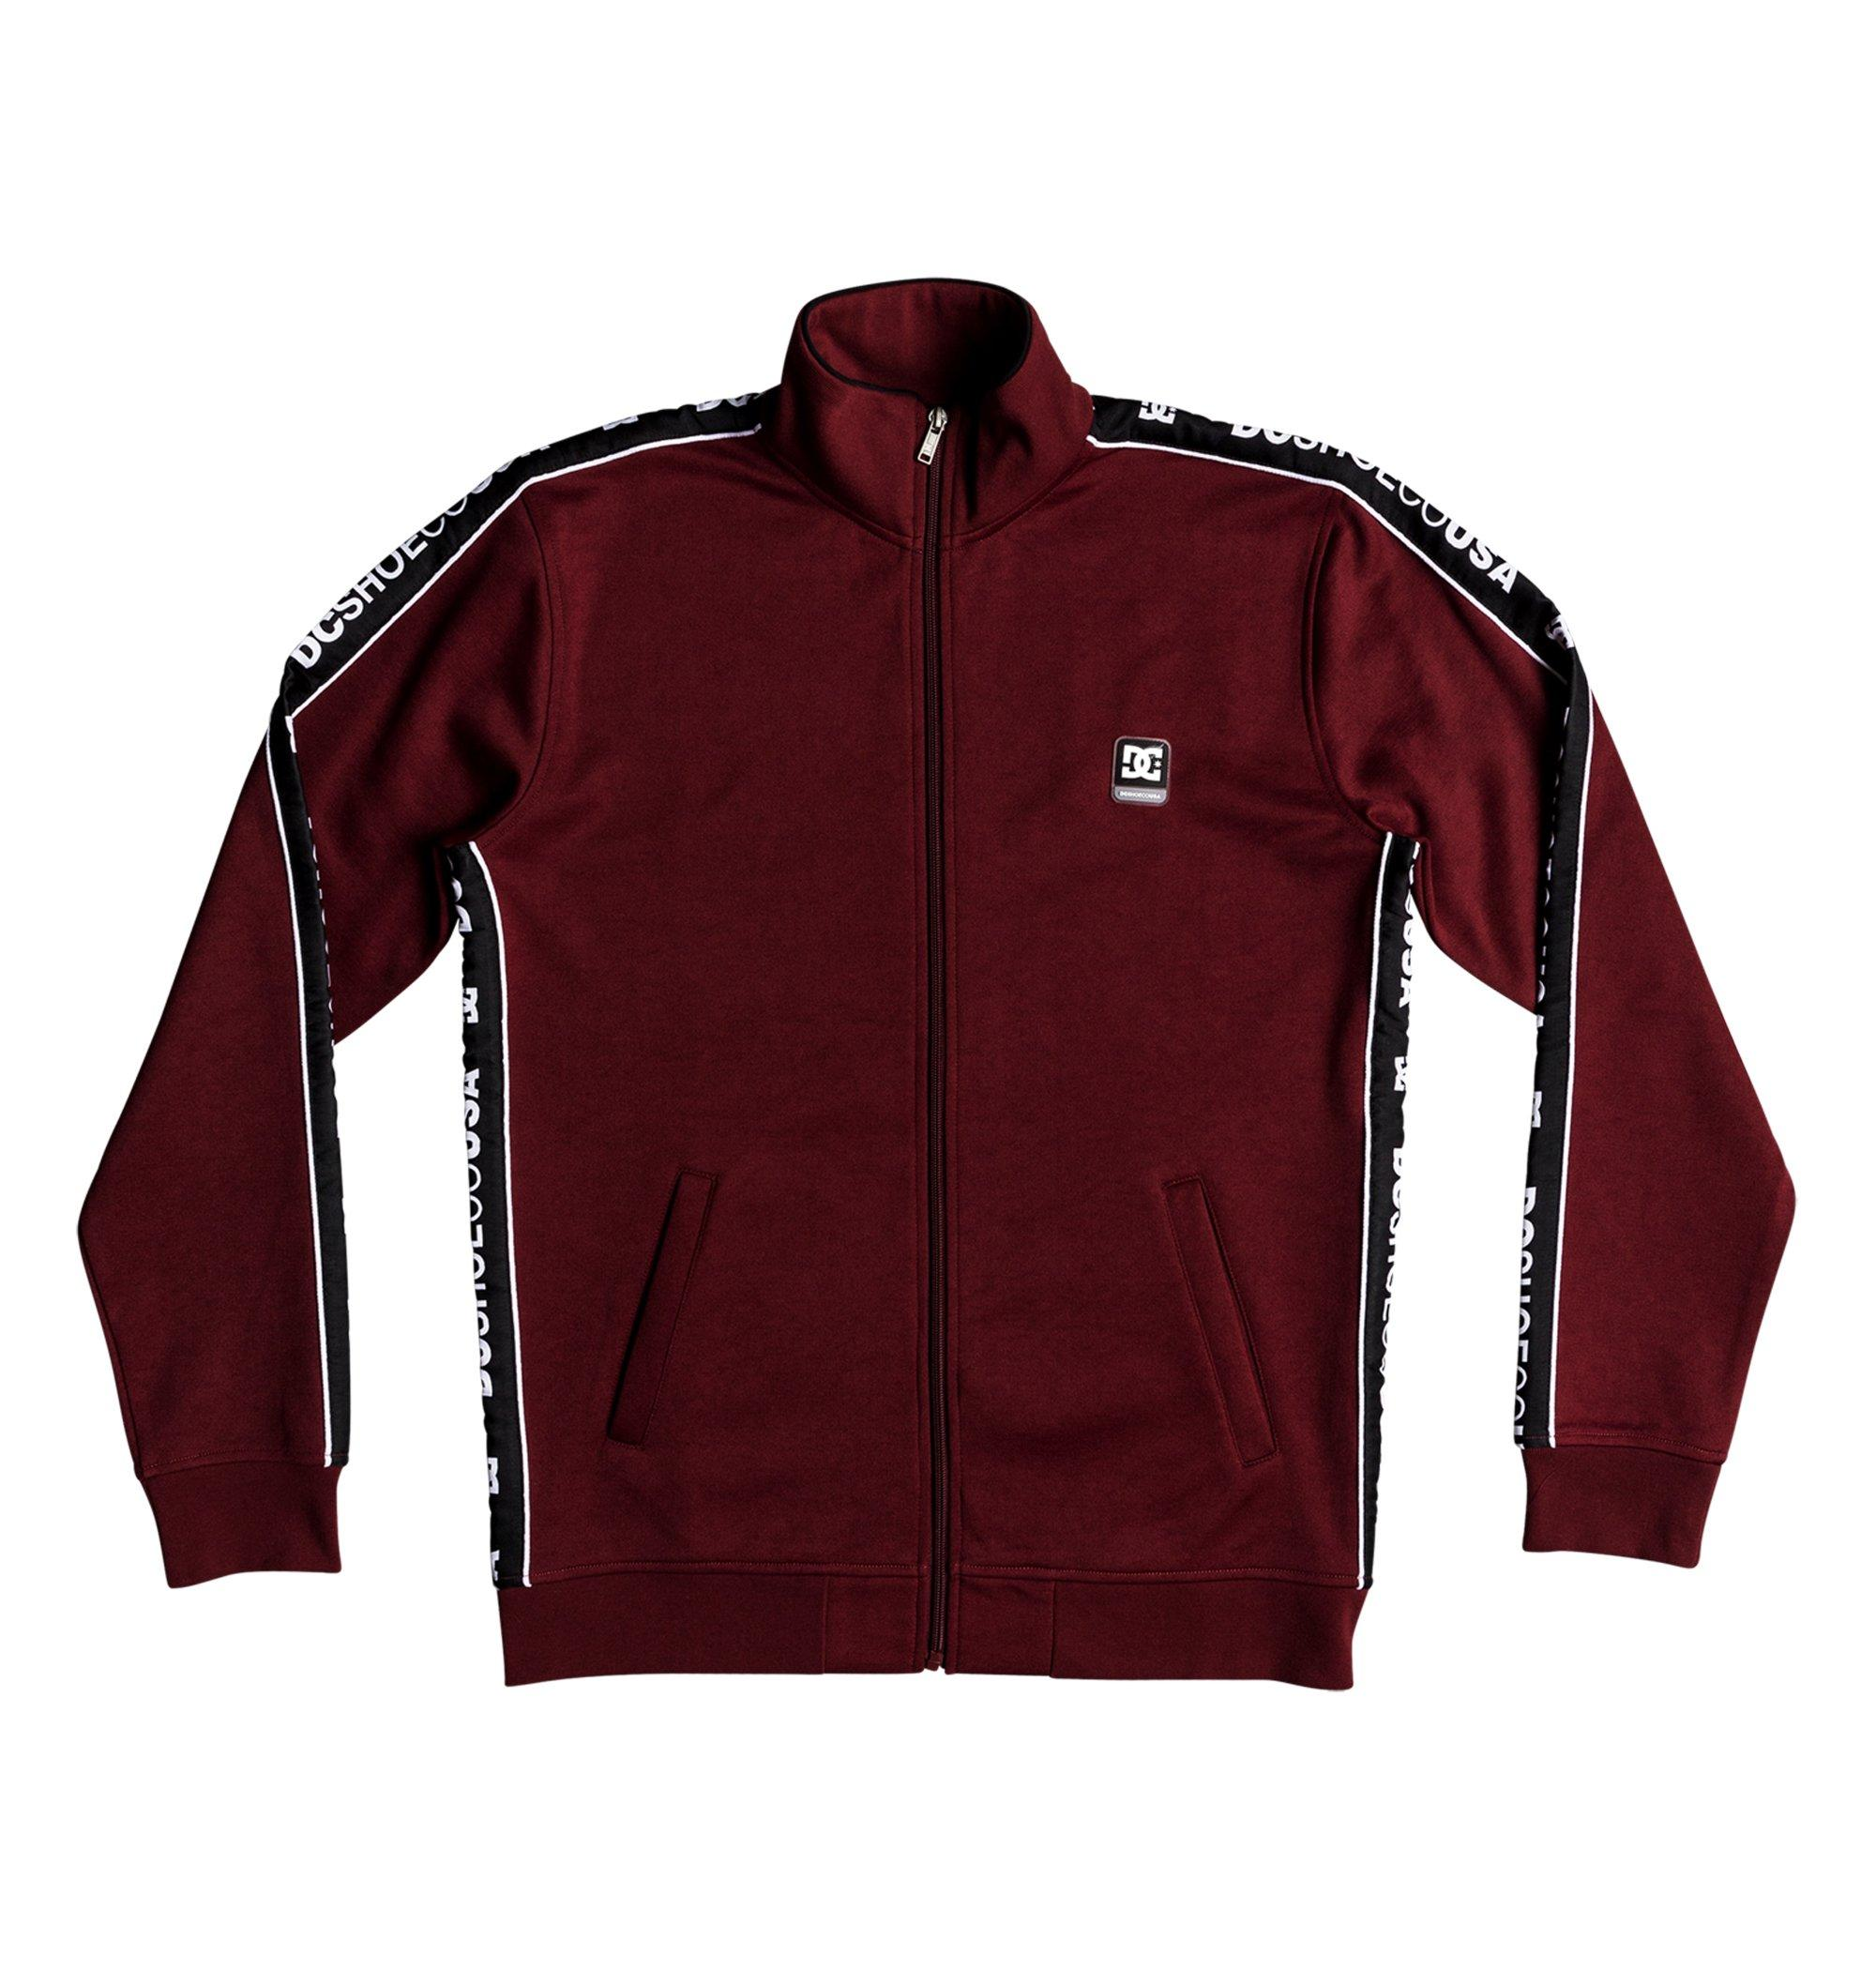 Chaqueta Dc Shoes modelo Bellingham en color burdeos-h